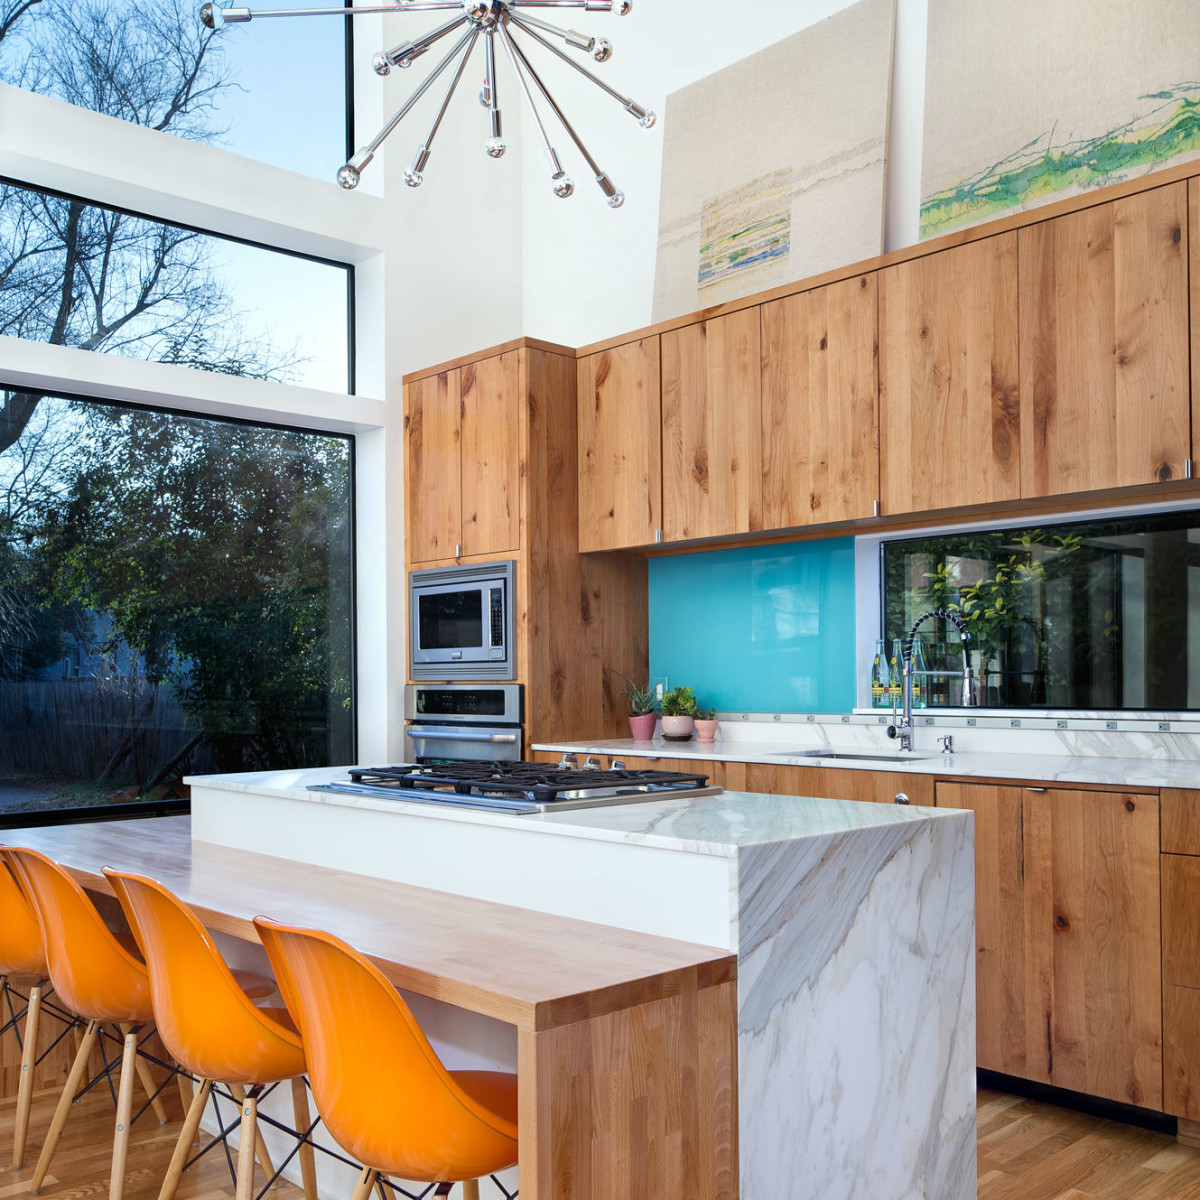 Home Design Experts: Local Design Experts Disclose Top Tips To Transform Your